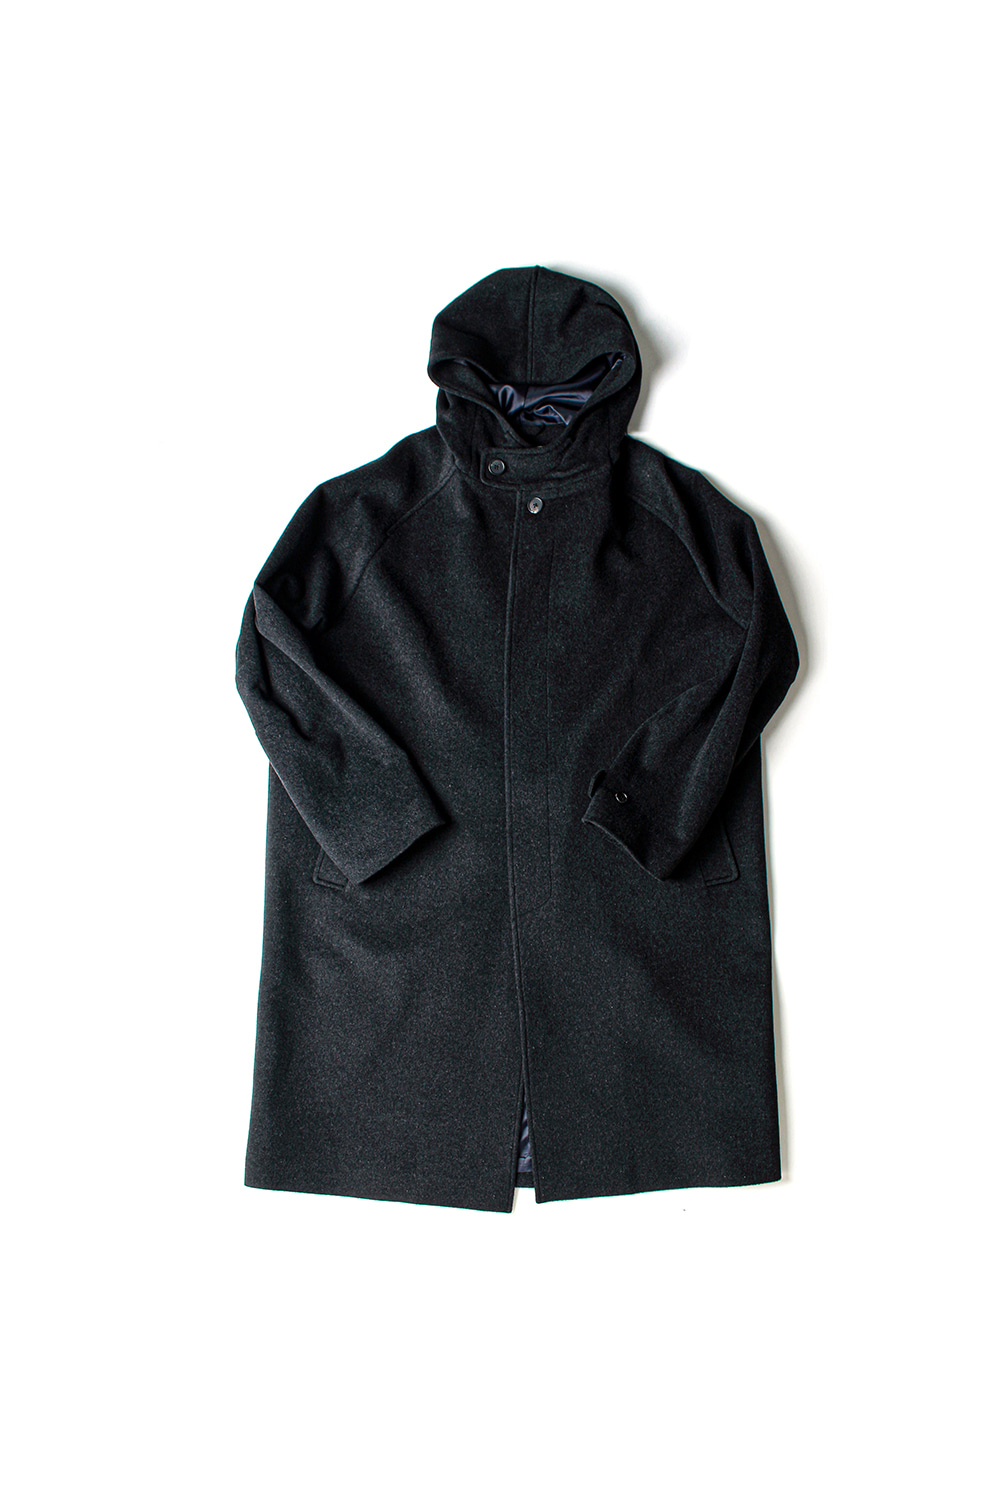 [Ourselves] WOOLCASH HOODED COAT (CH)